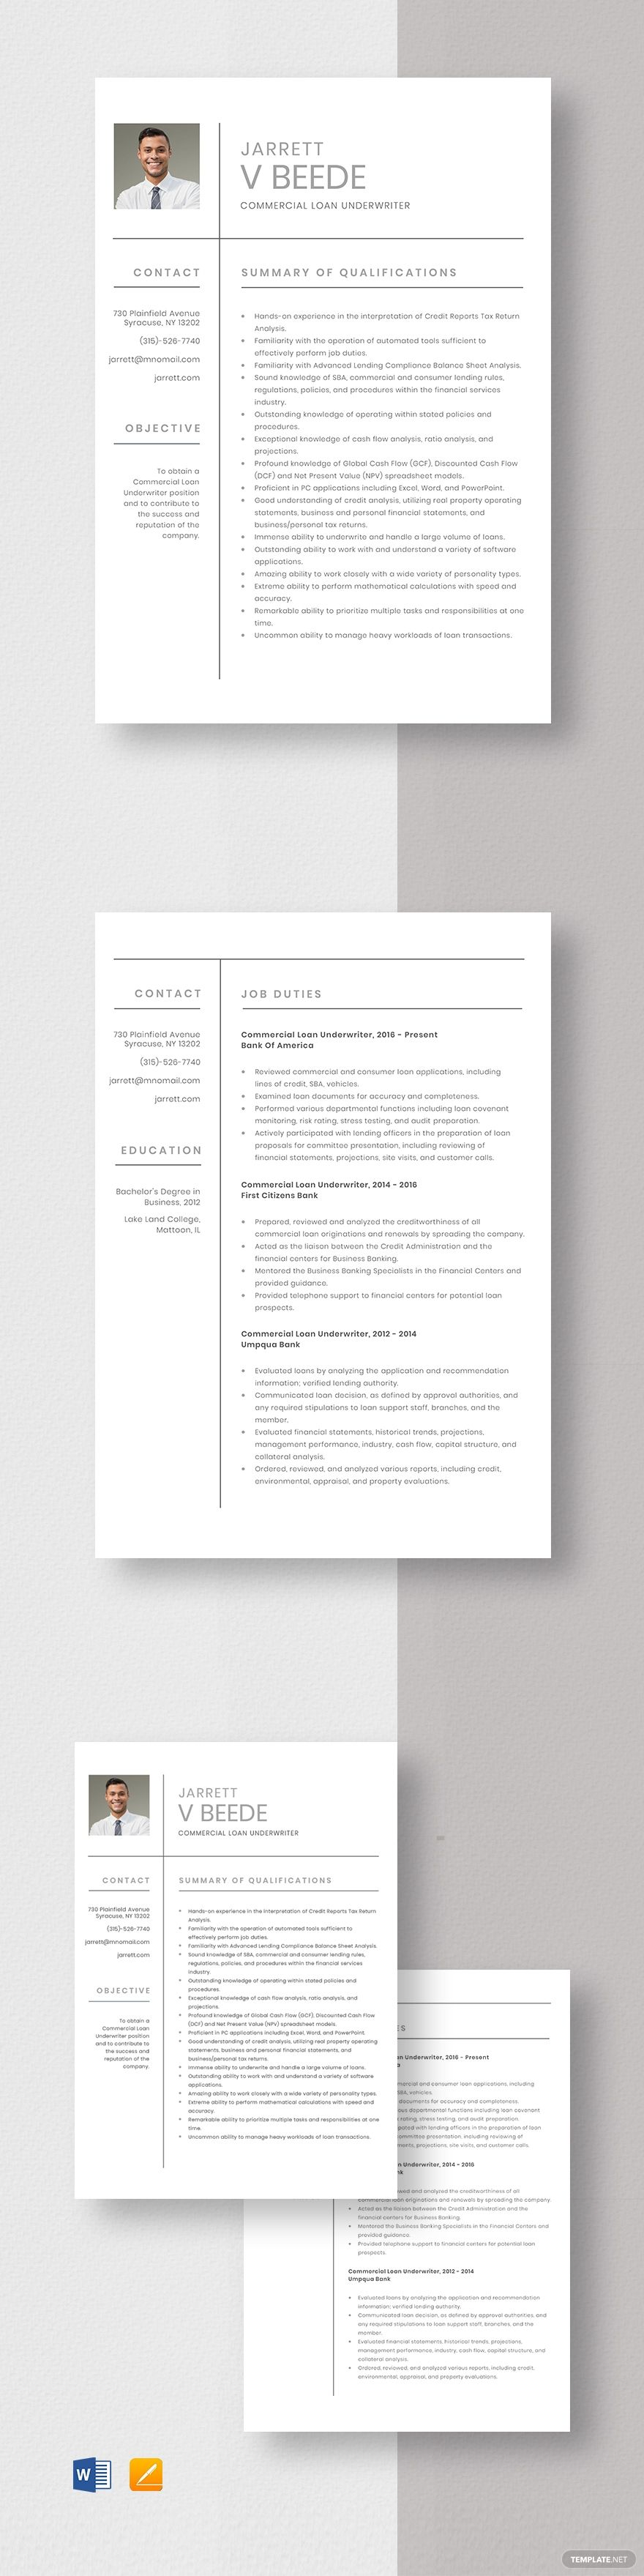 Commercial Loan Underwriter Resume Cv Template Word Doc Apple Mac Pages Cv Template Word Project Manager Resume Resume Template